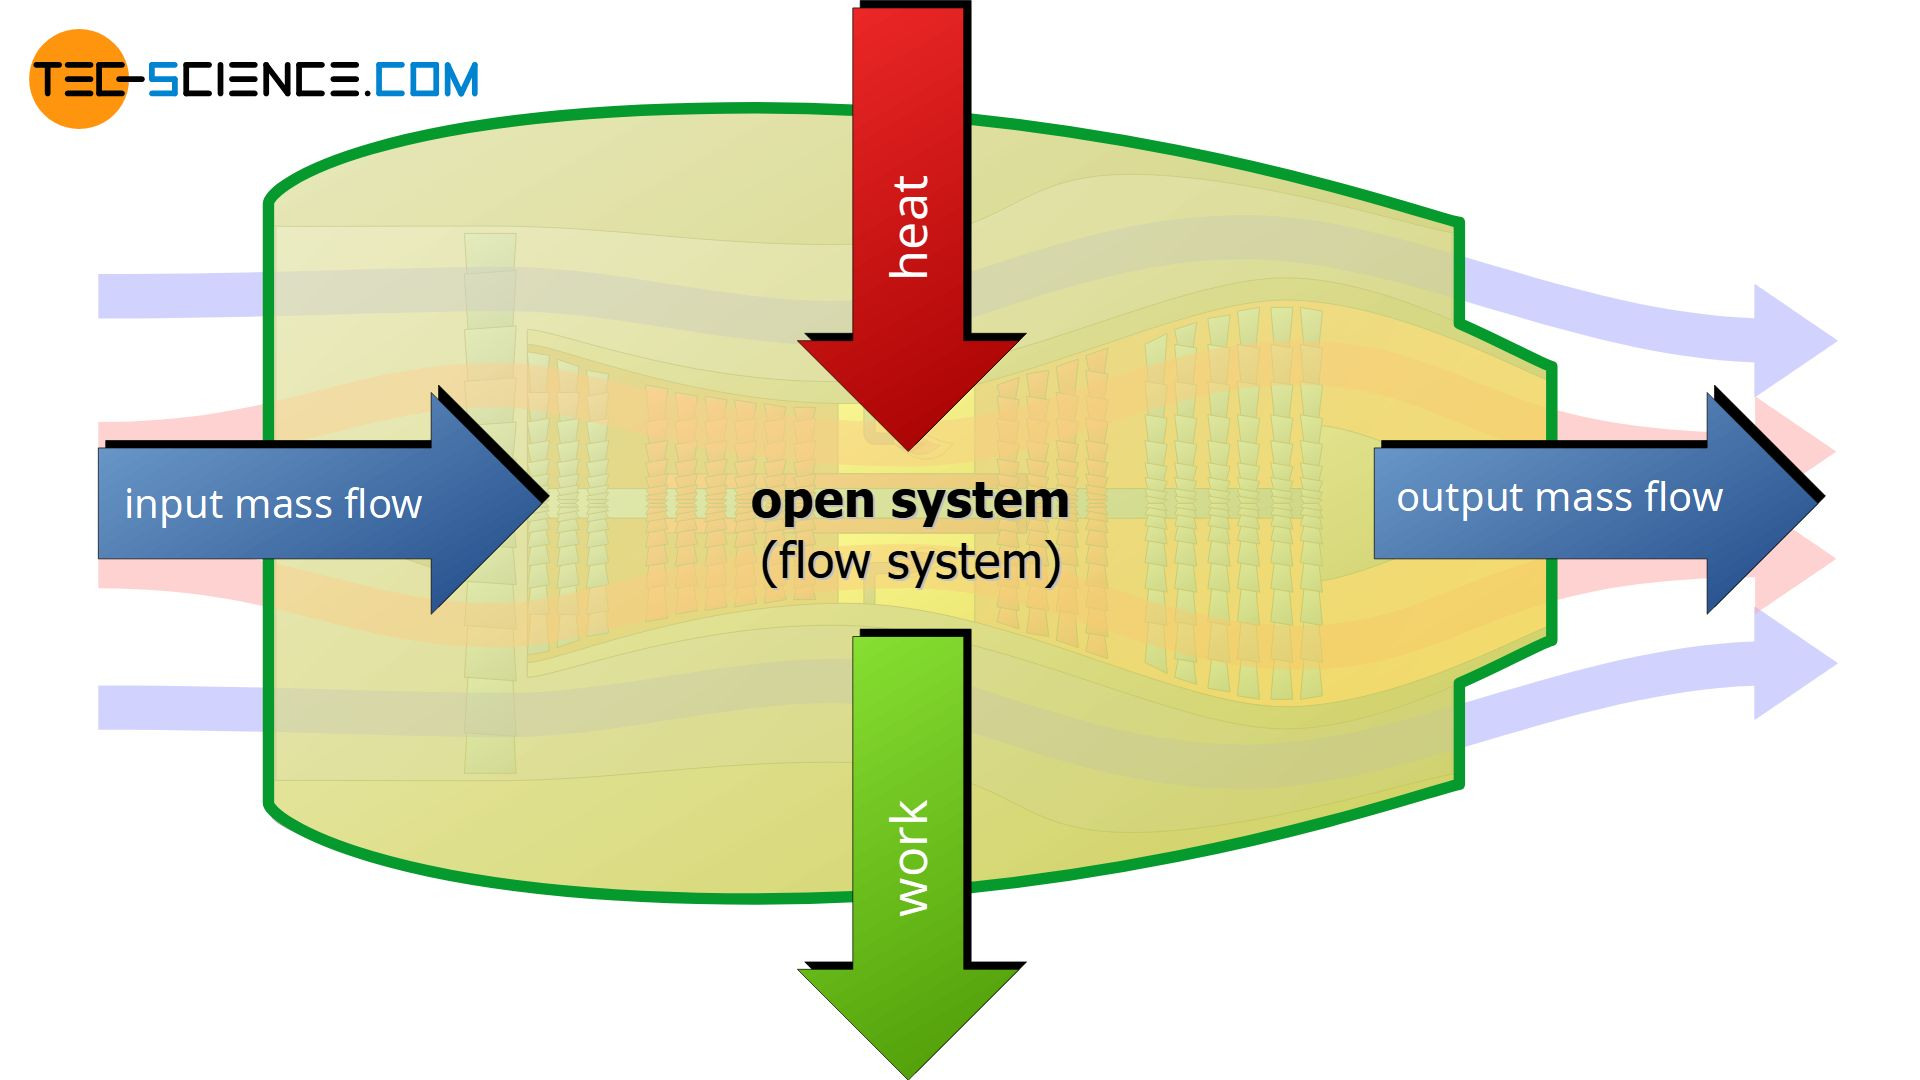 Aircraft engine as an example of an open system (flow system)